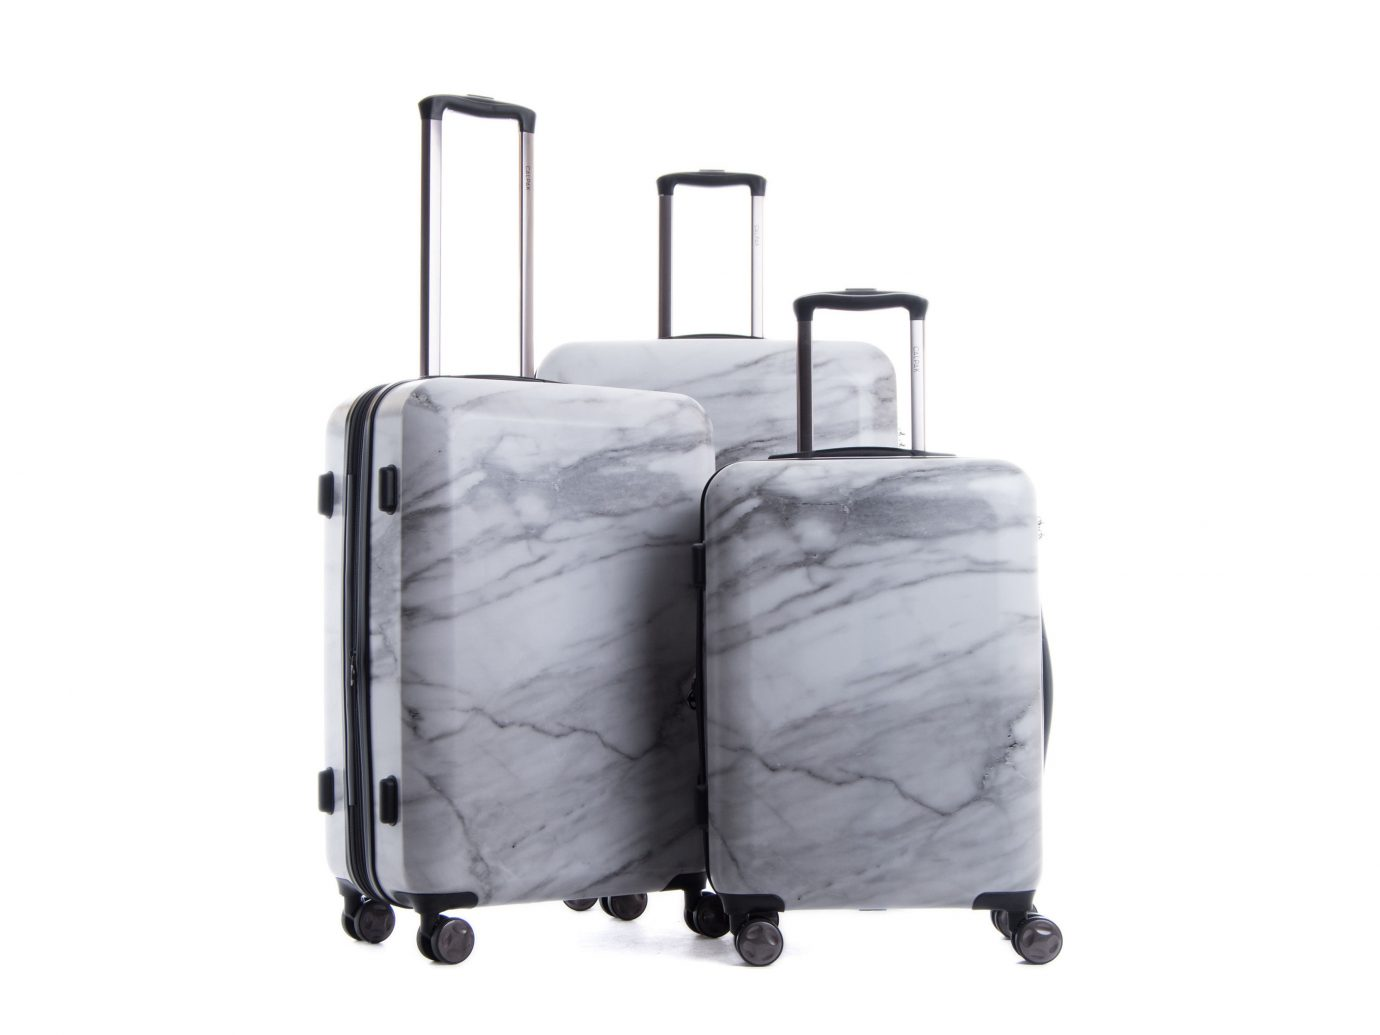 Packing Tips Style + Design Travel Shop luggage product suitcase product design hand luggage luggage & bags handcart